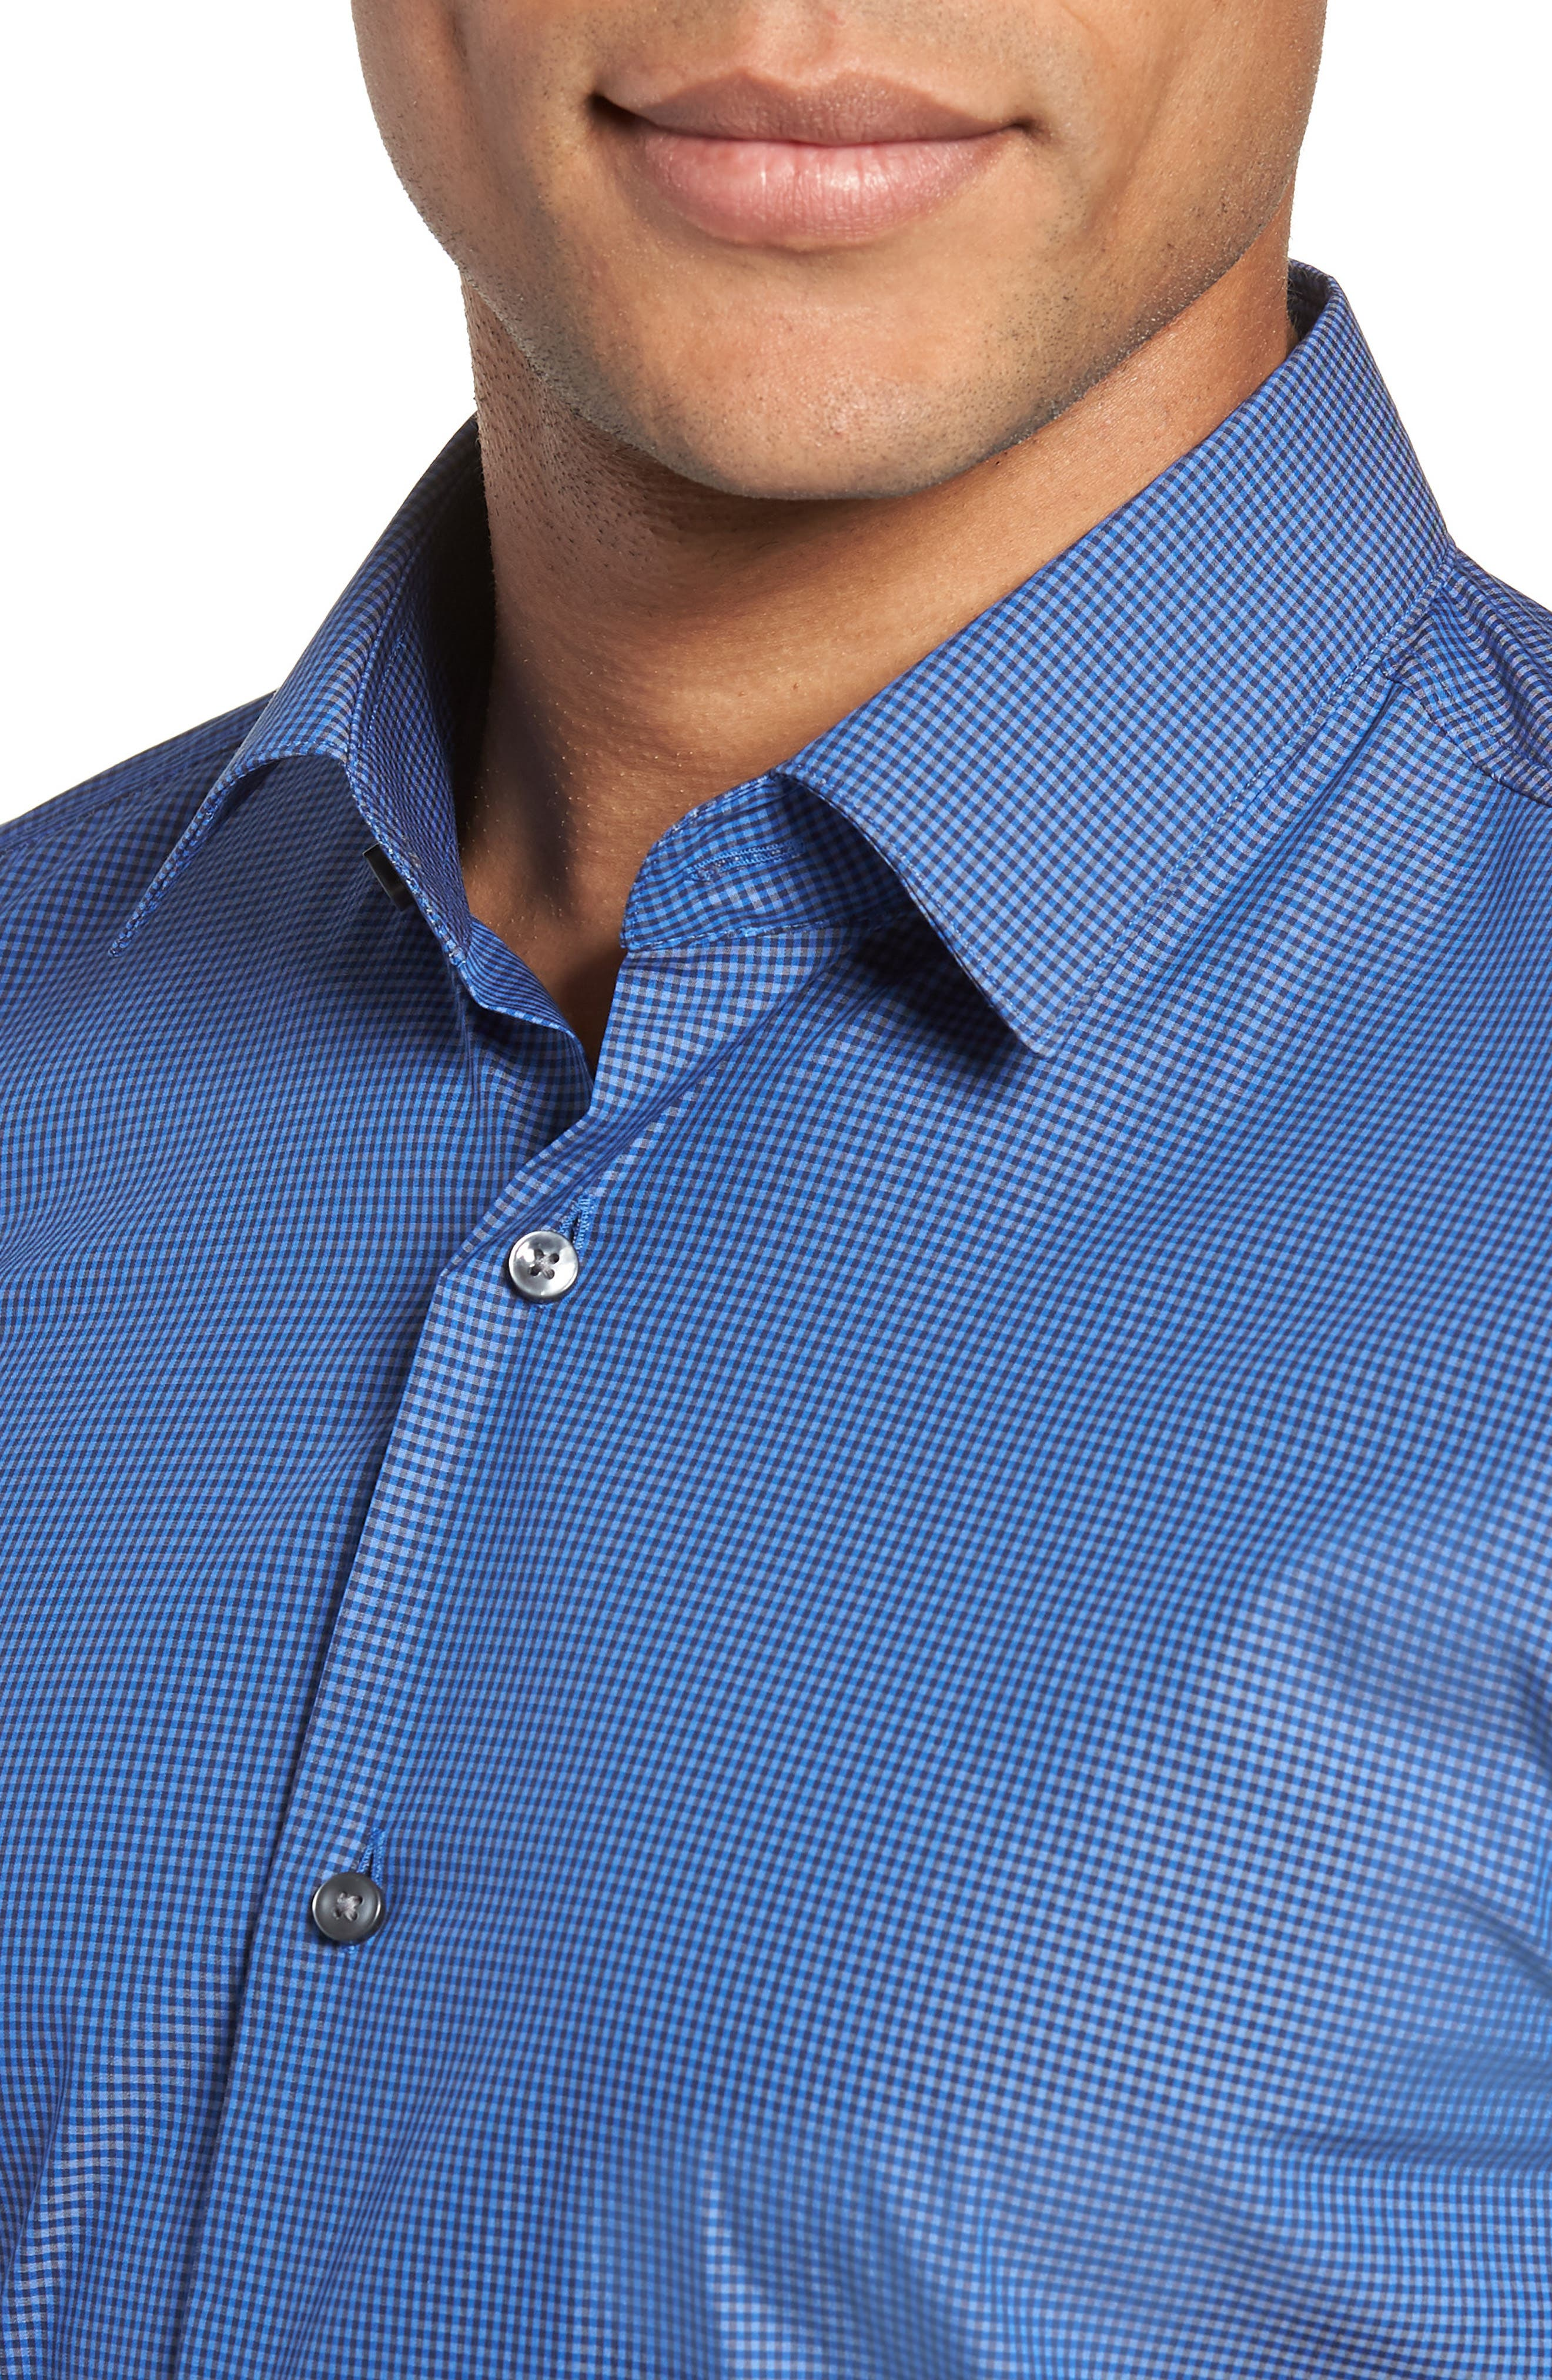 Isko Slim Fit Stretch Check Dress Shirt,                             Alternate thumbnail 2, color,                             BLUE